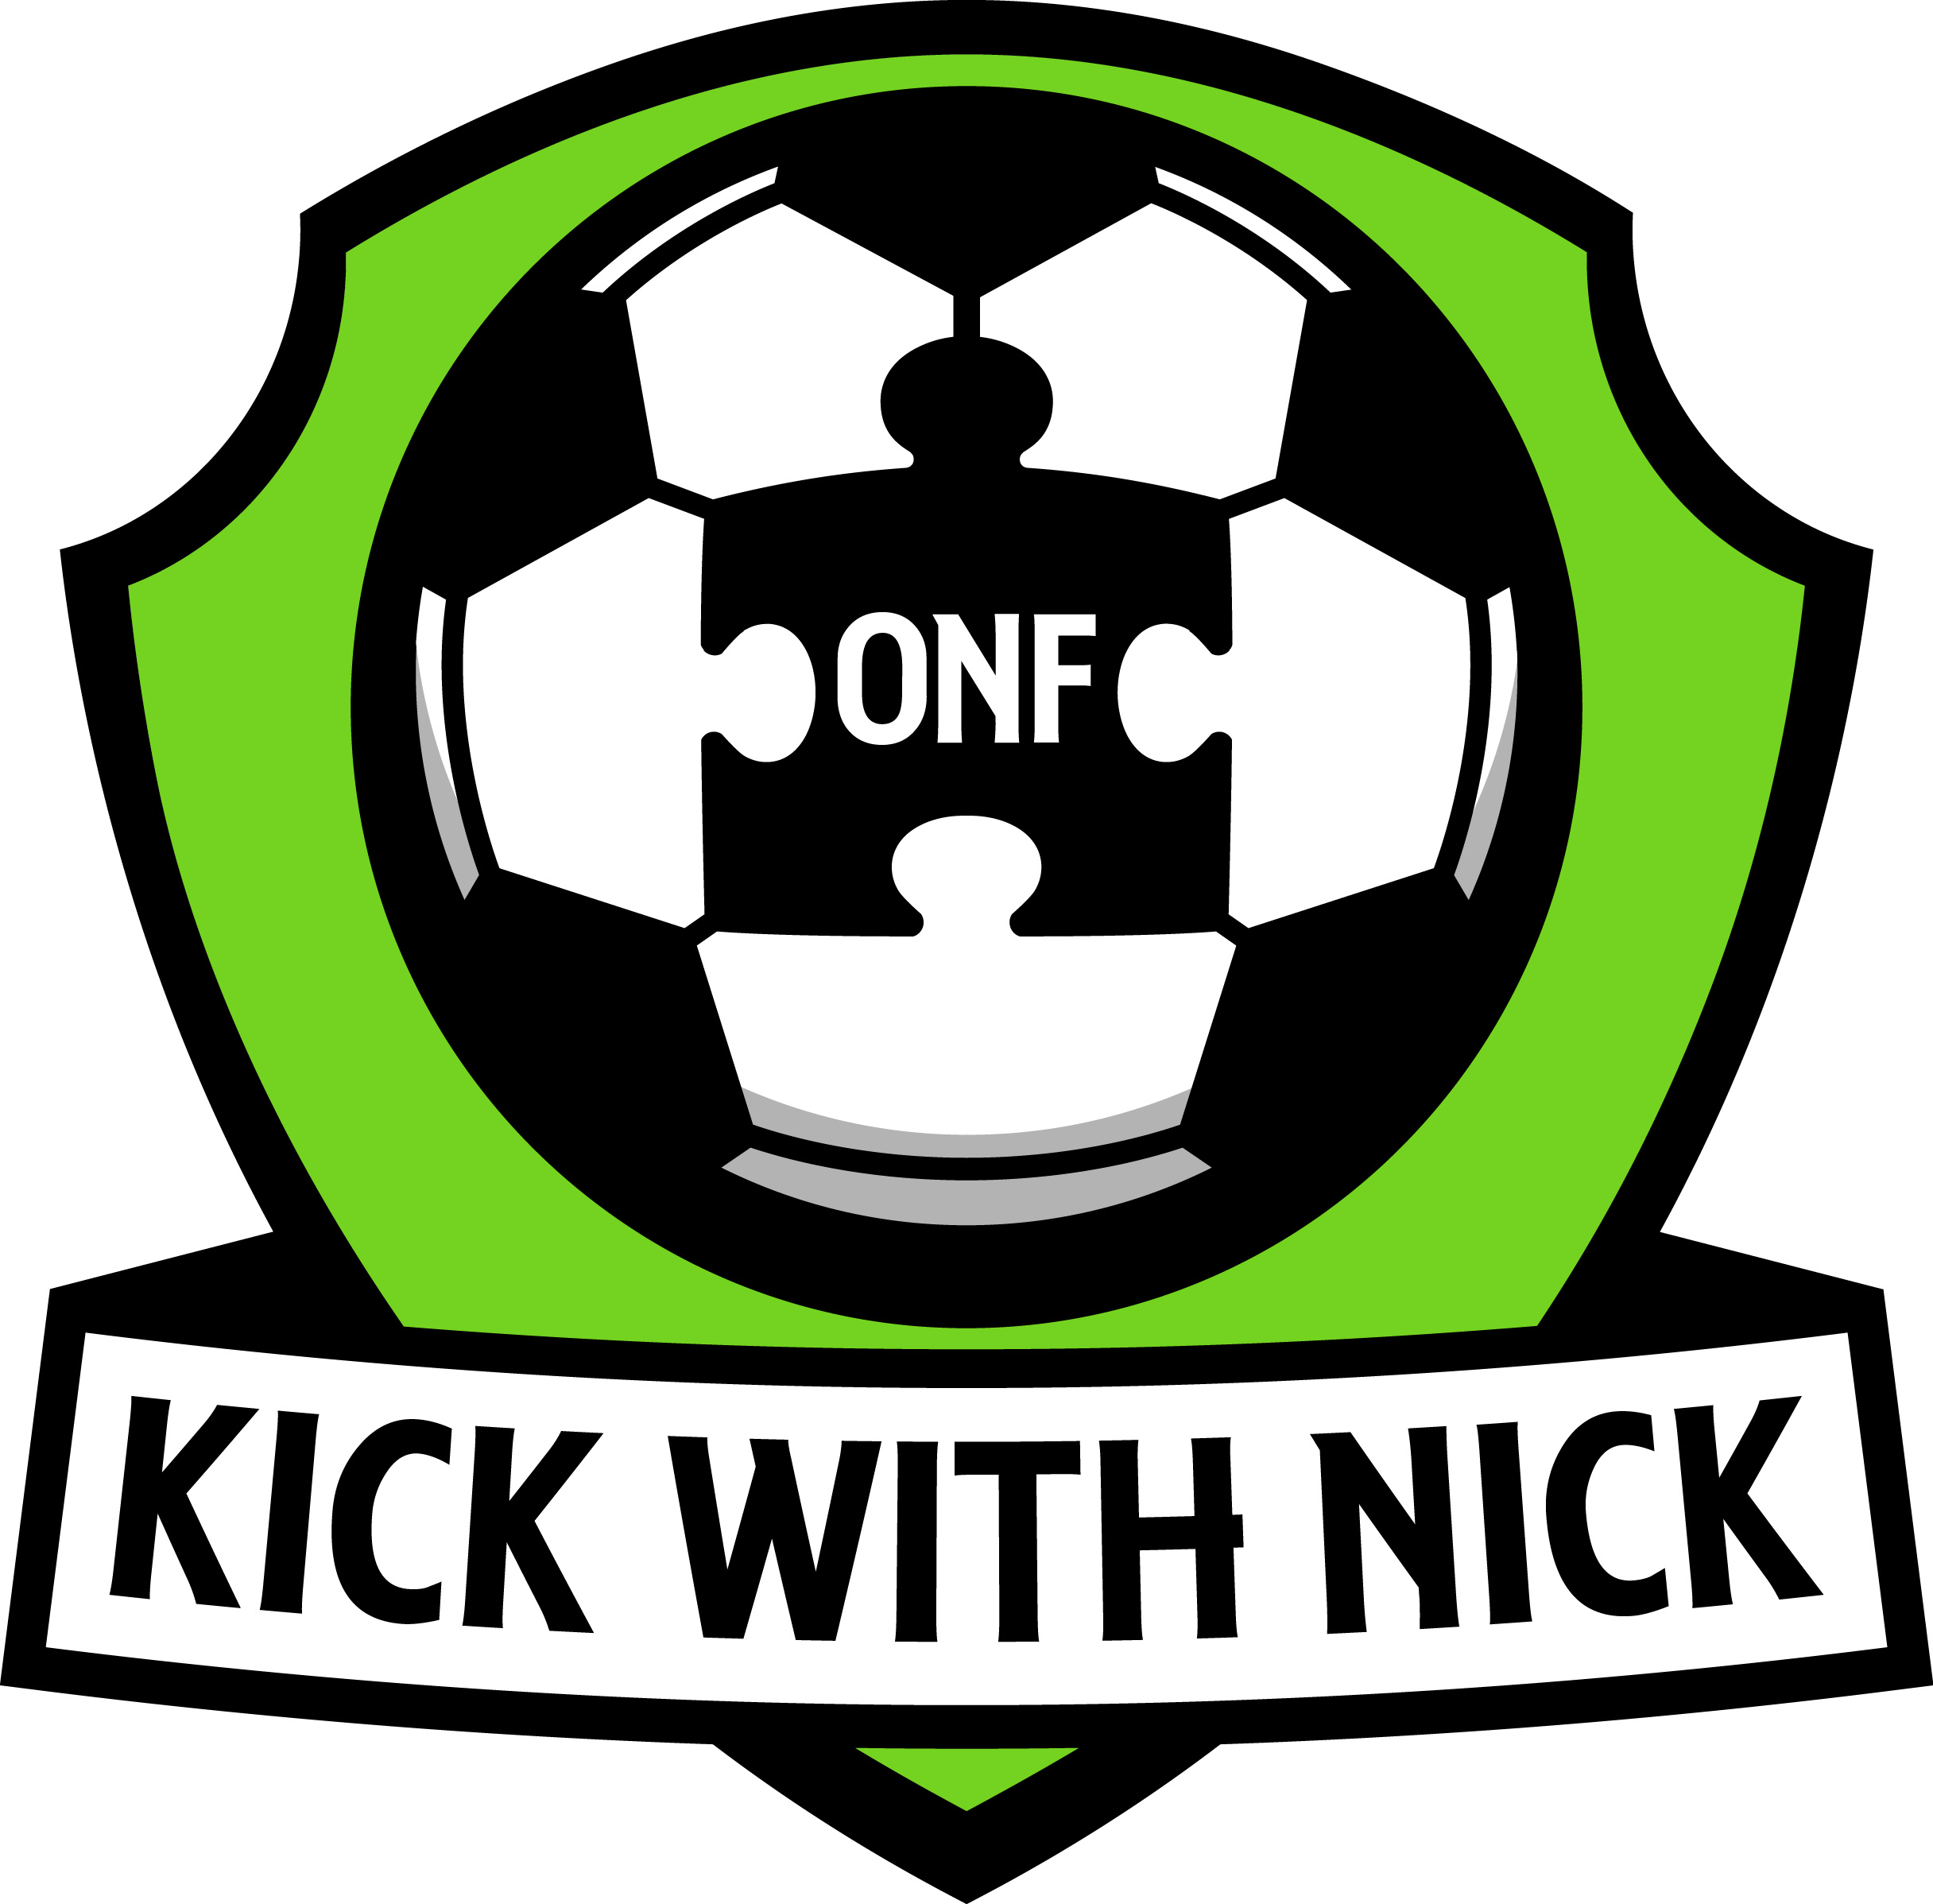 Kick With Nick Logo (1).jpg